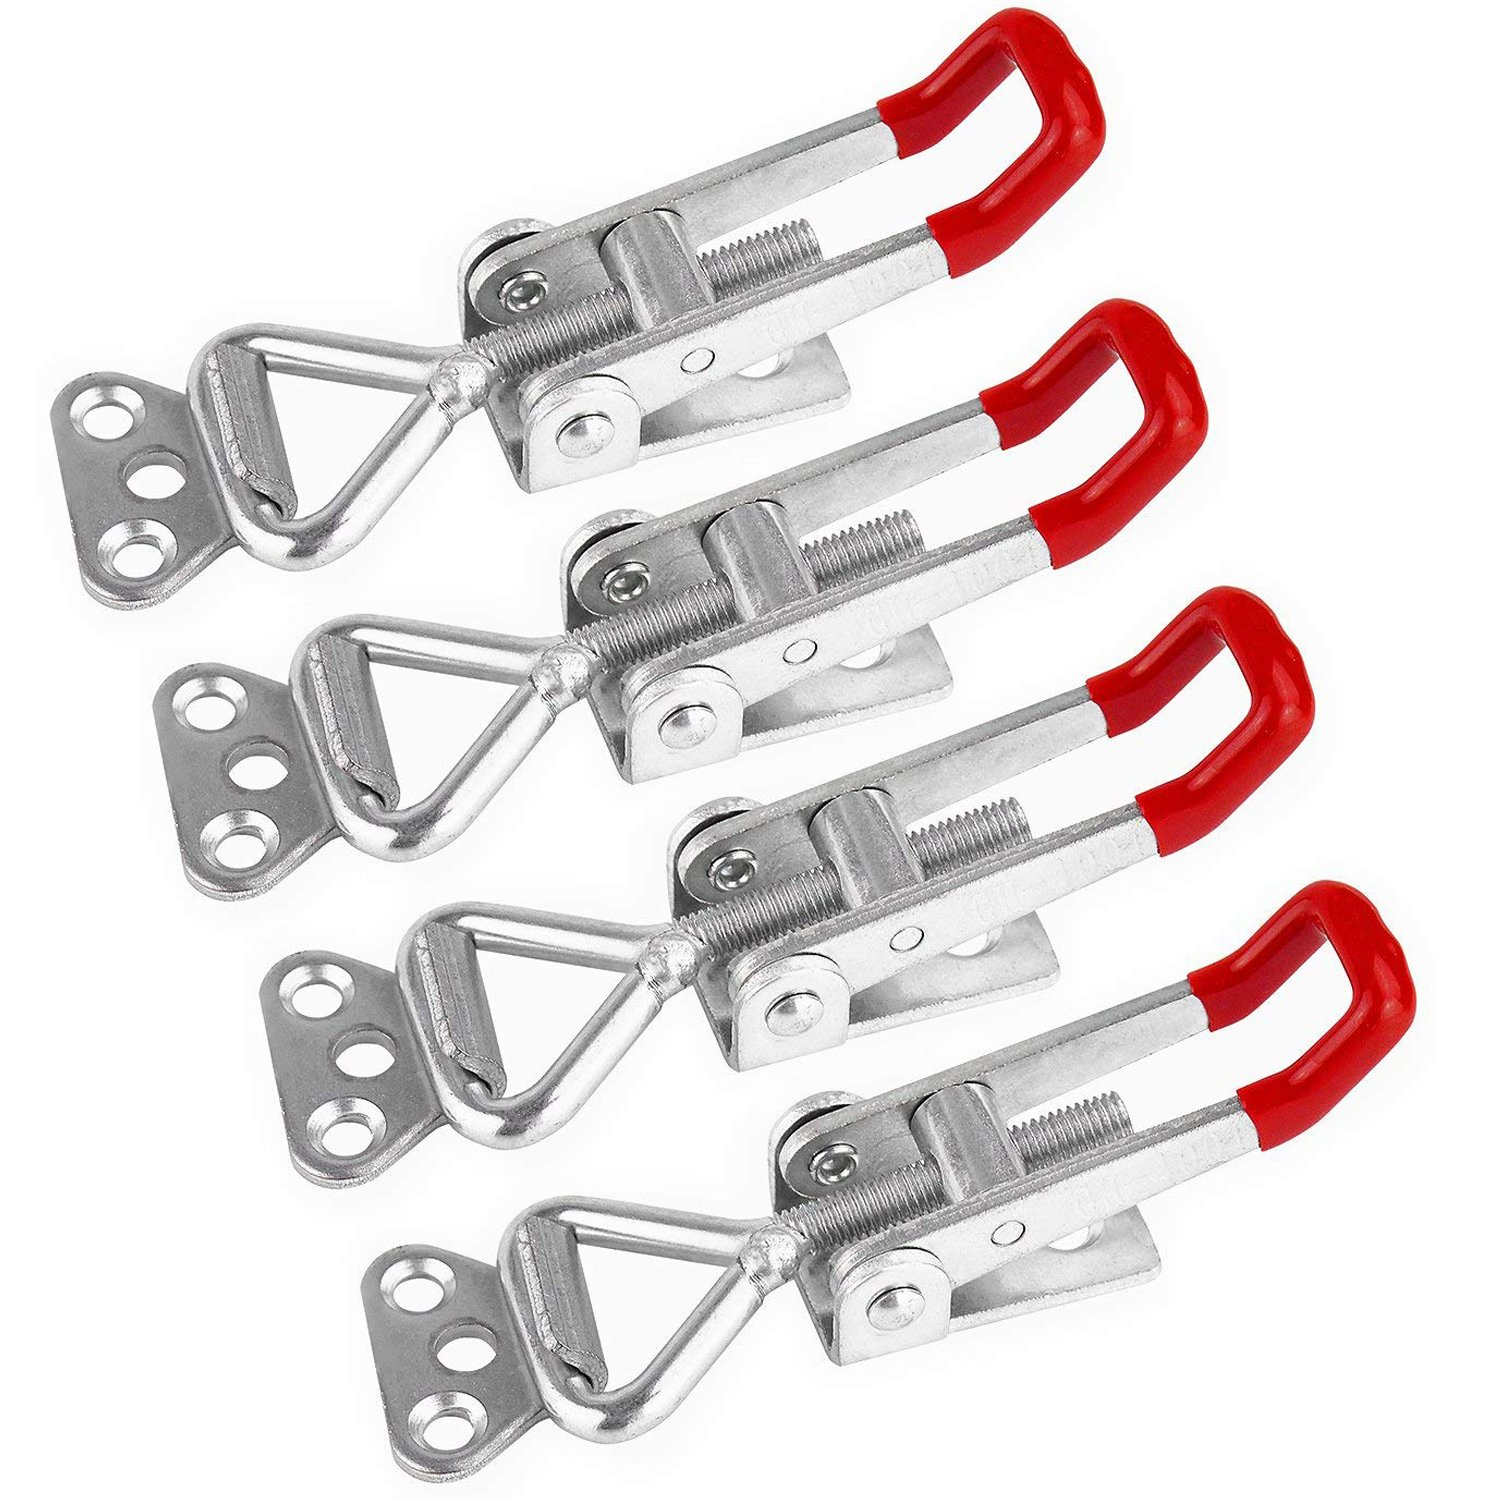 Toolzone Hw039 8-44mm Stainless Steel Hose Clamps Clips Silver 35-piece